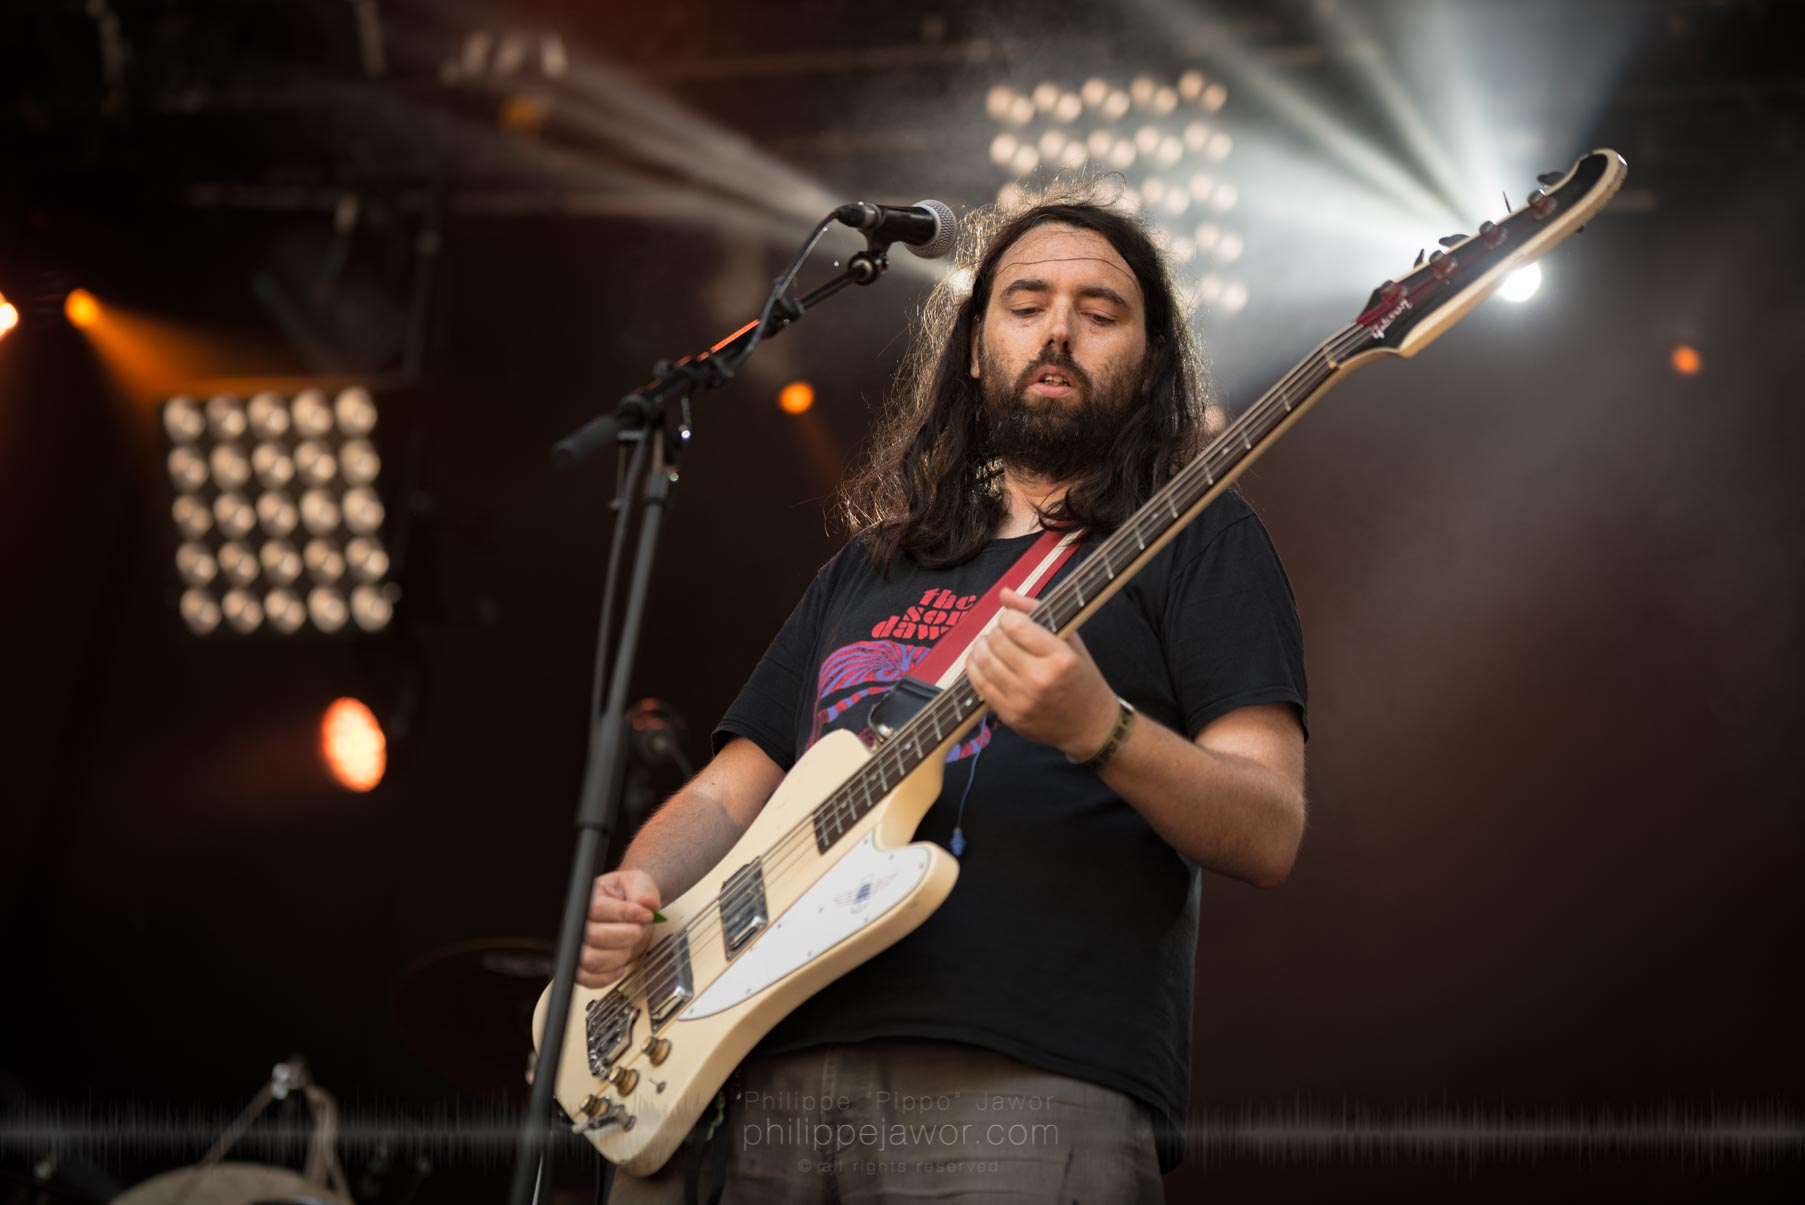 The French psychedelic stoner rock band Mars Red Sky live at Sylak Open Air festival, Saint Maurice de Gourdans, France, August 2017.  On assignment for Metal Obs' Magazine All rights reserved.